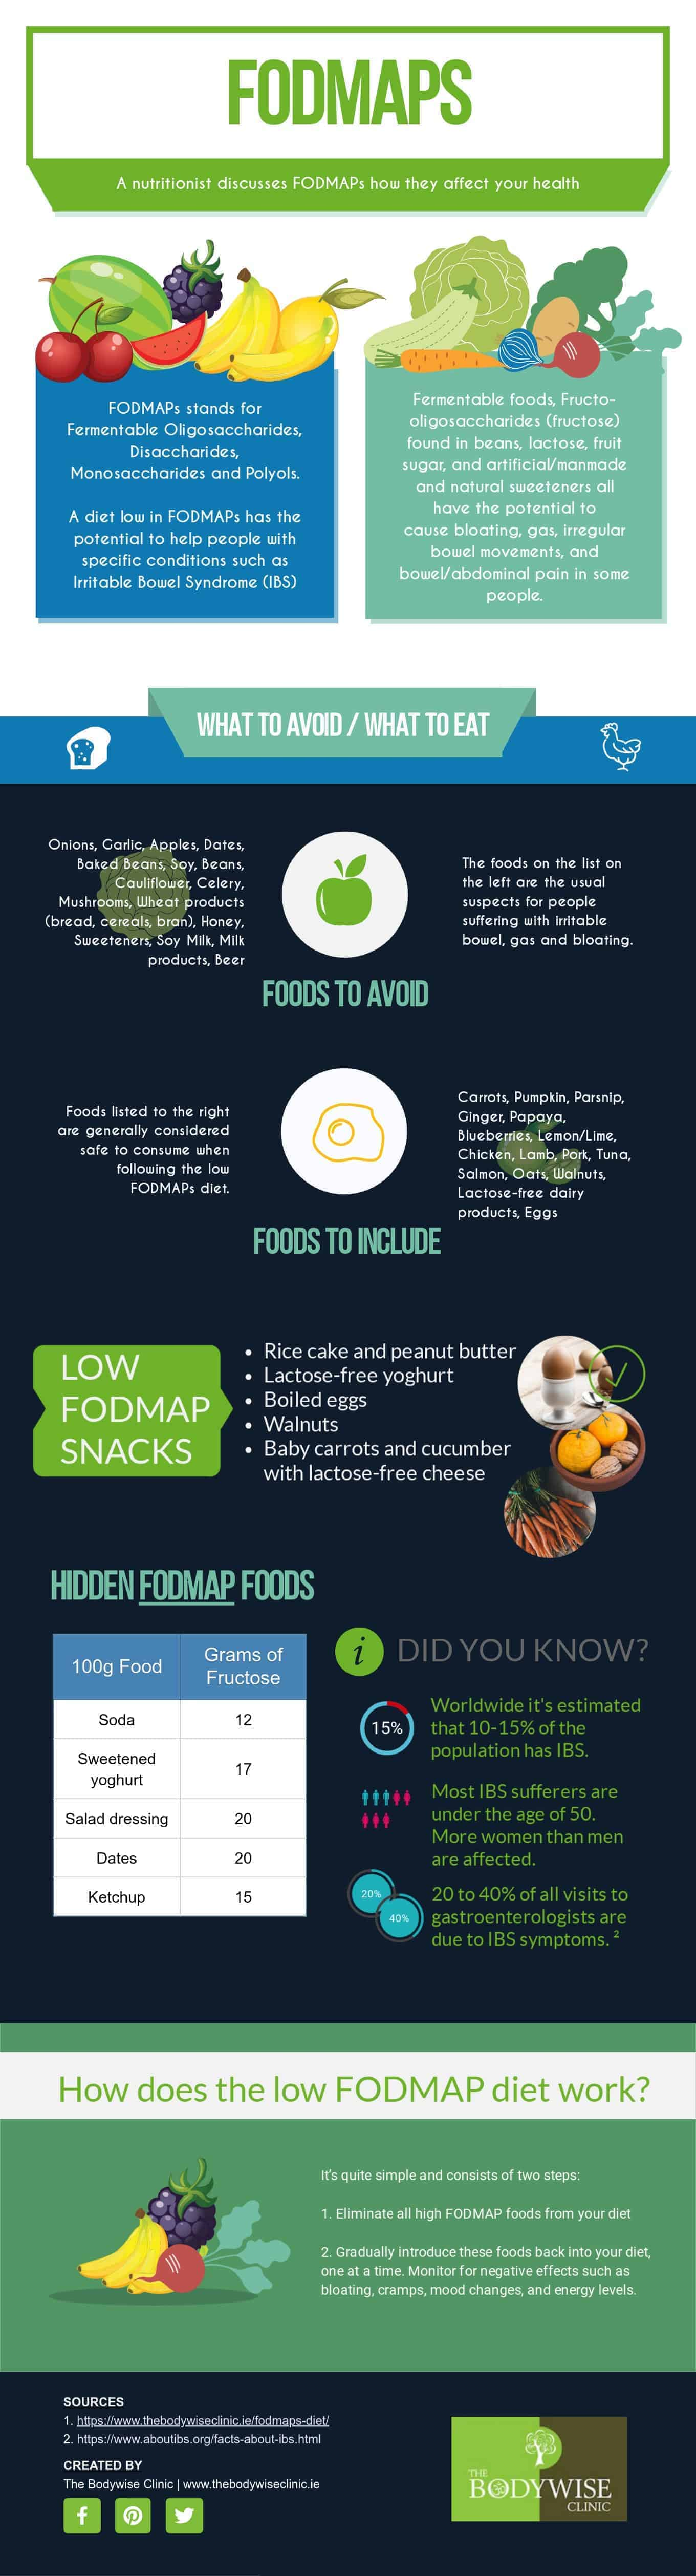 FODMAPs diet for IBS Infographic